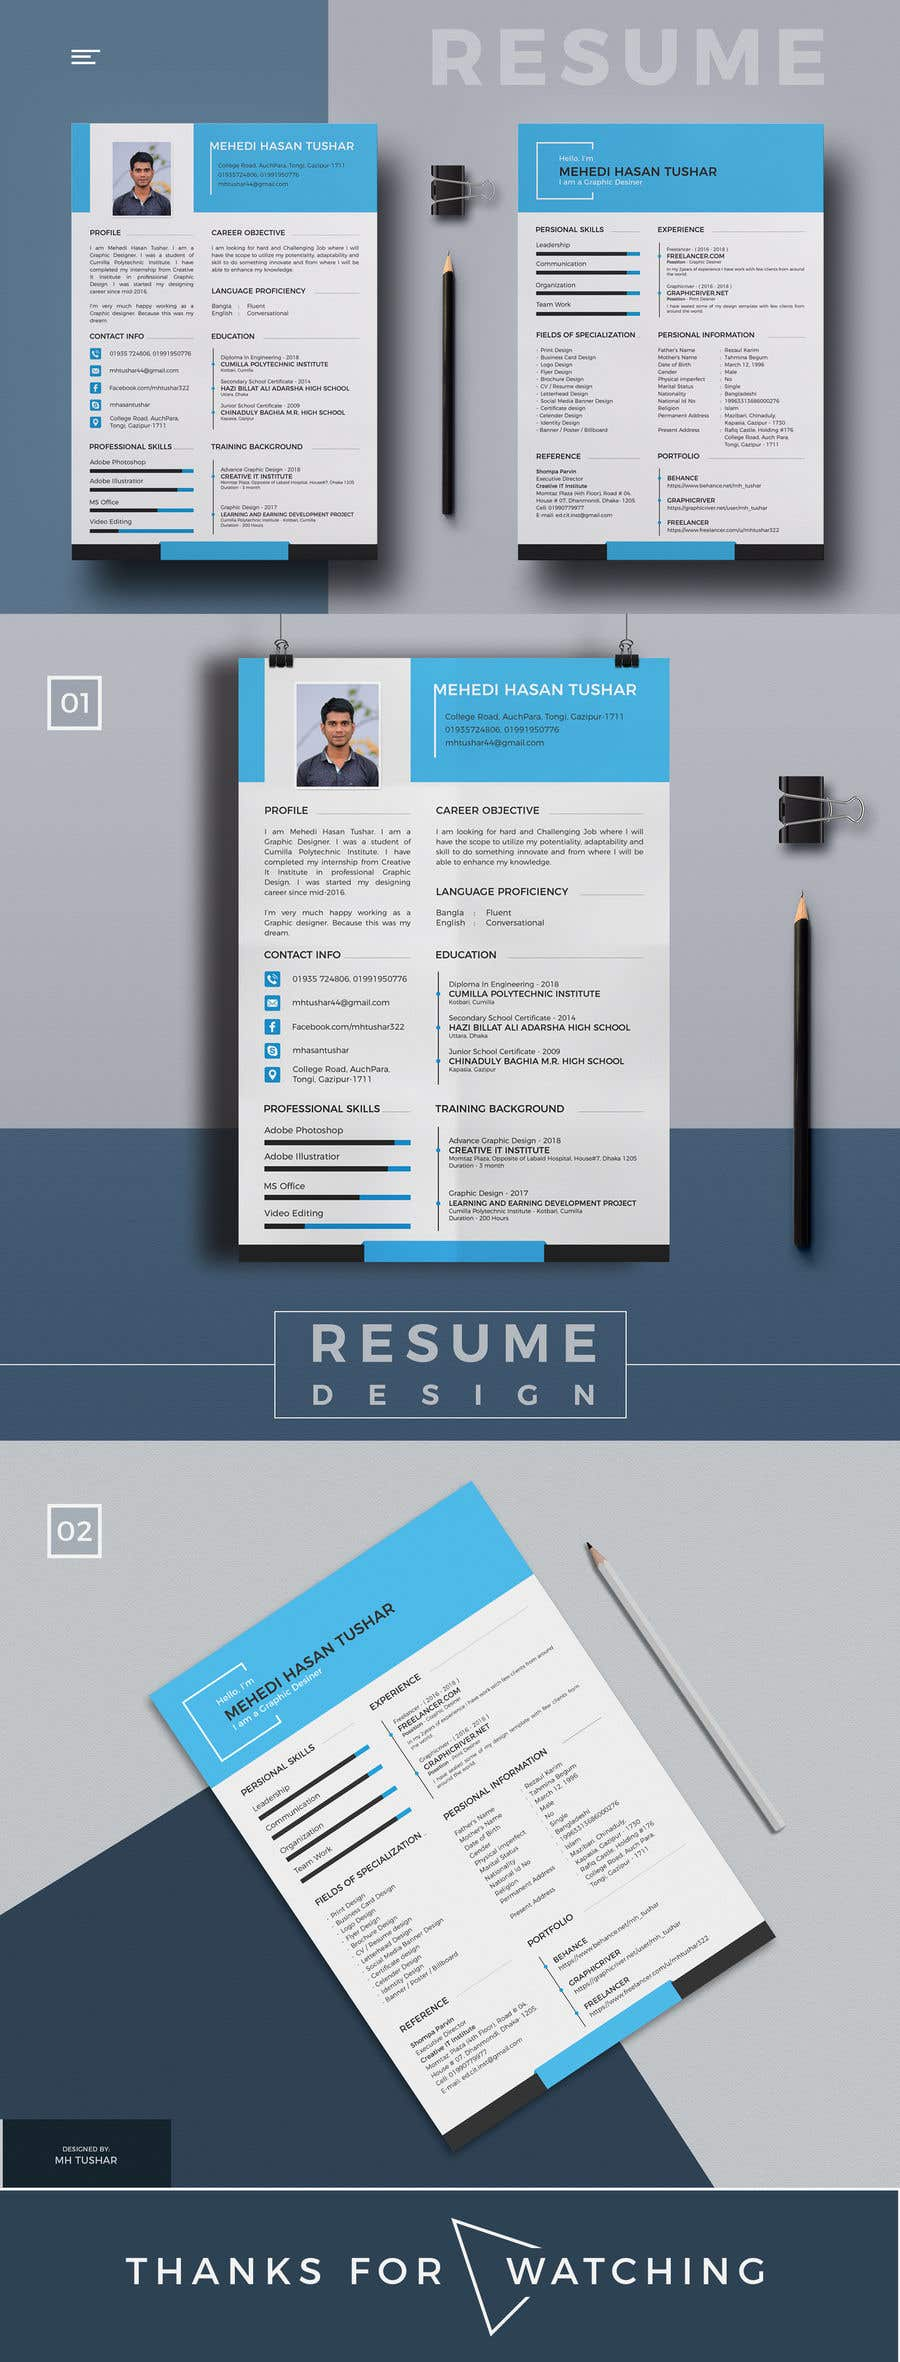 Entry #1 by mhtushar322 for 5 pdf CV templates/designs for 5